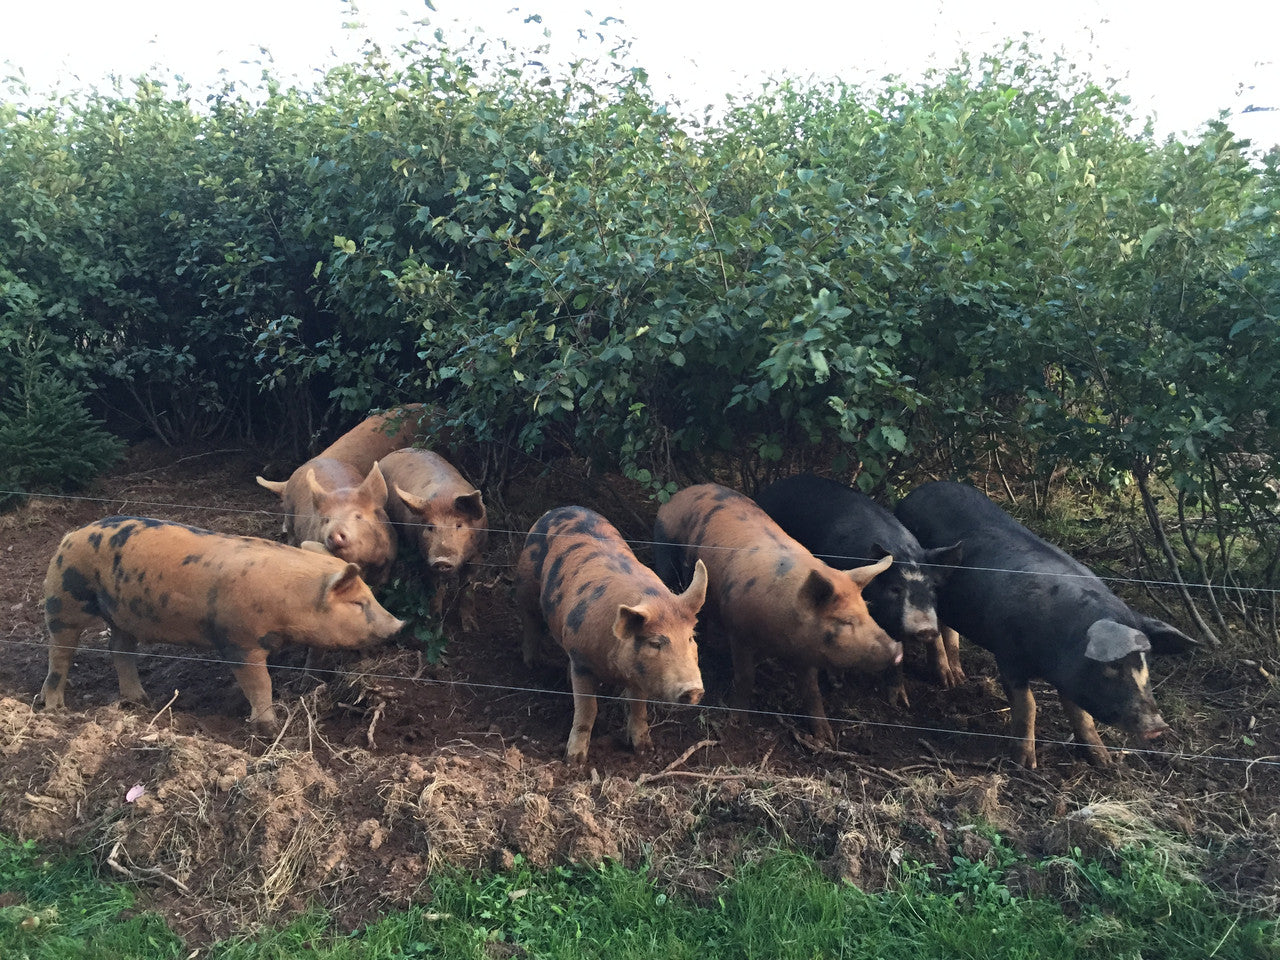 The pigs doing some reclamation work.